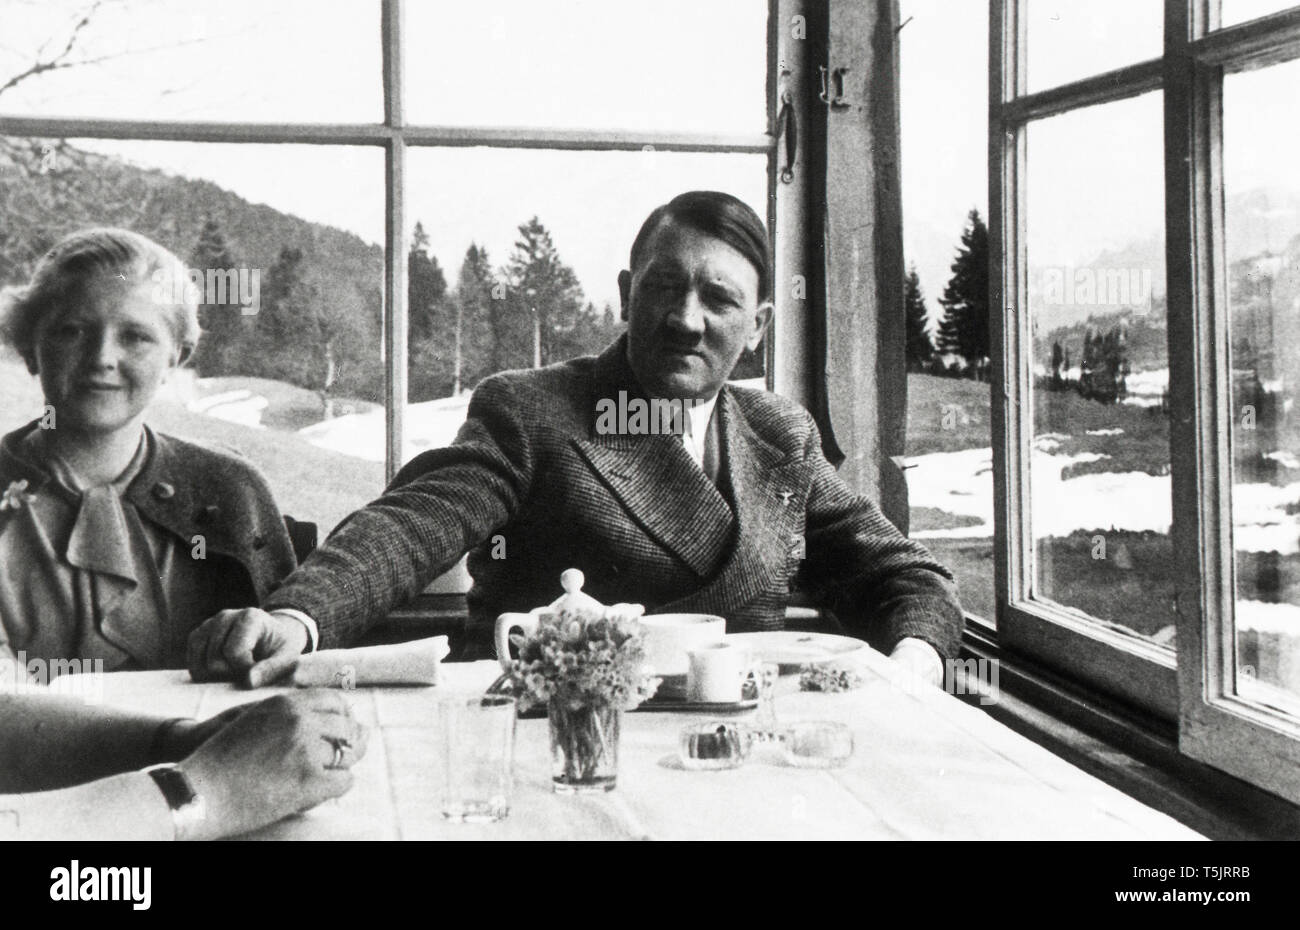 Eva Braun Collection (devet) -  Candid photo of Adolf Hitler ca. late 1930s or early 1940s - Stock Image